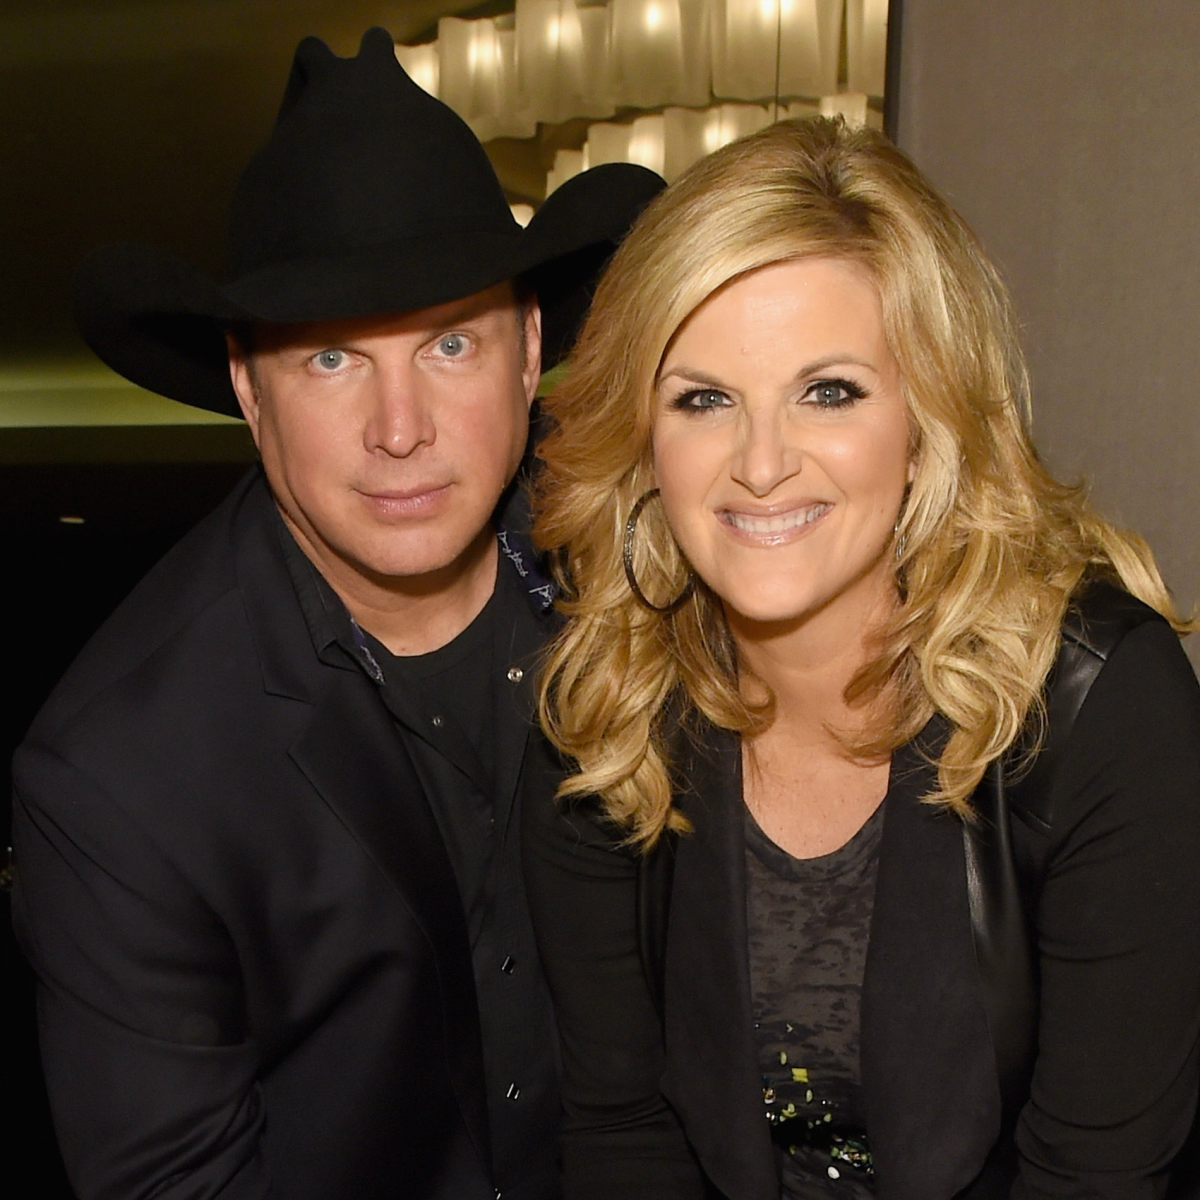 Garth Brooks Makes Up For Lost Time With 8 Houston